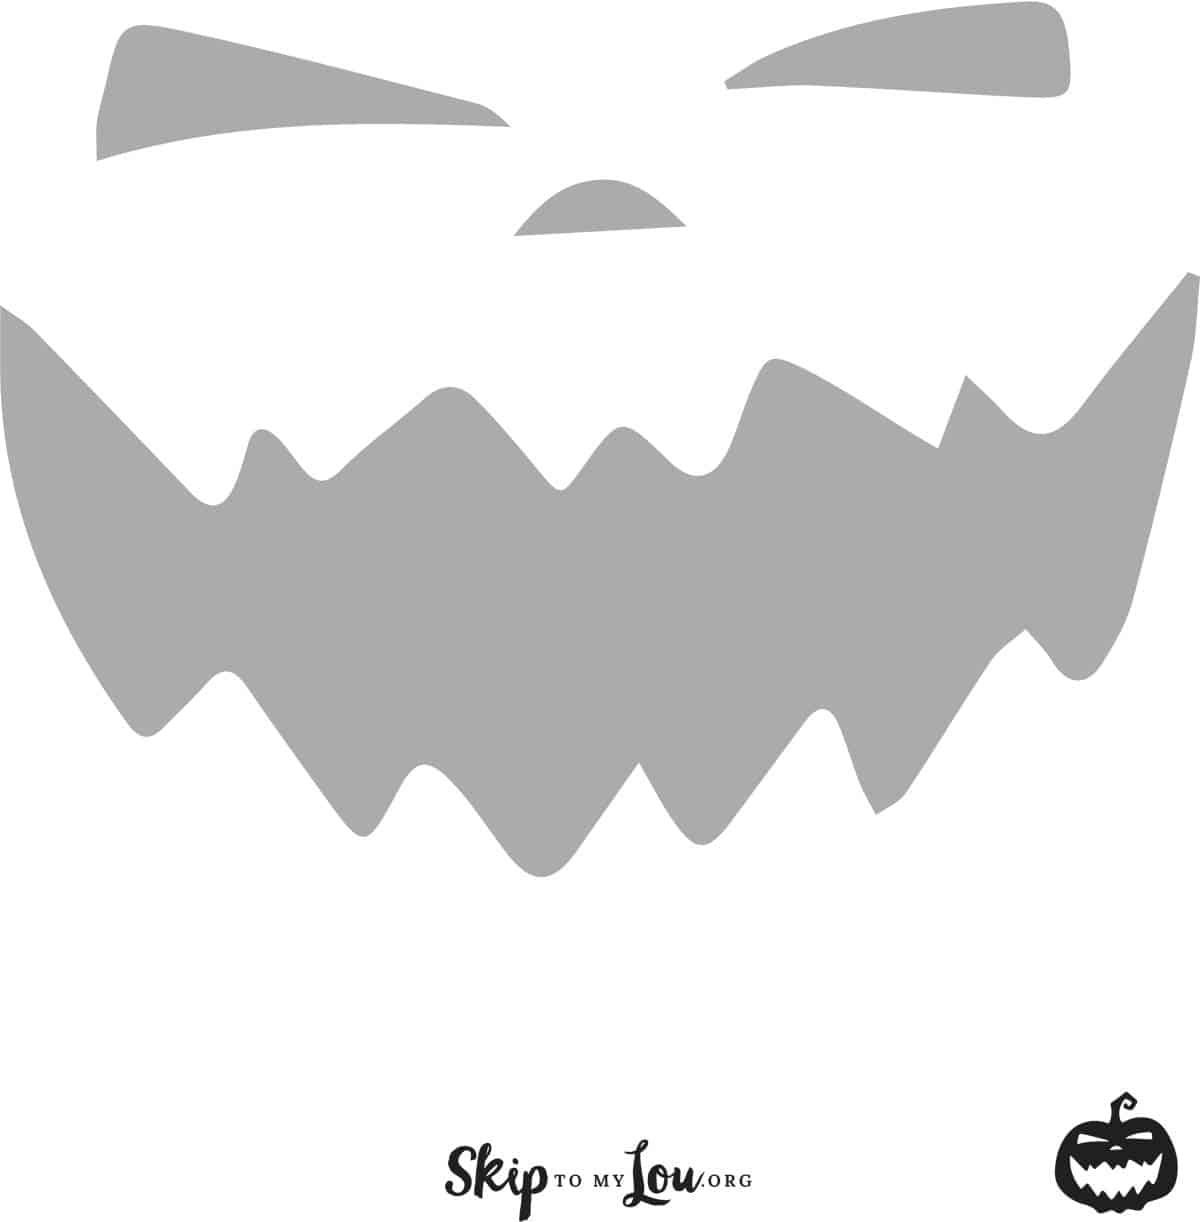 007 Phenomenal Free Pumpkin Template Printable Image  Easy Carving Scary StencilFull